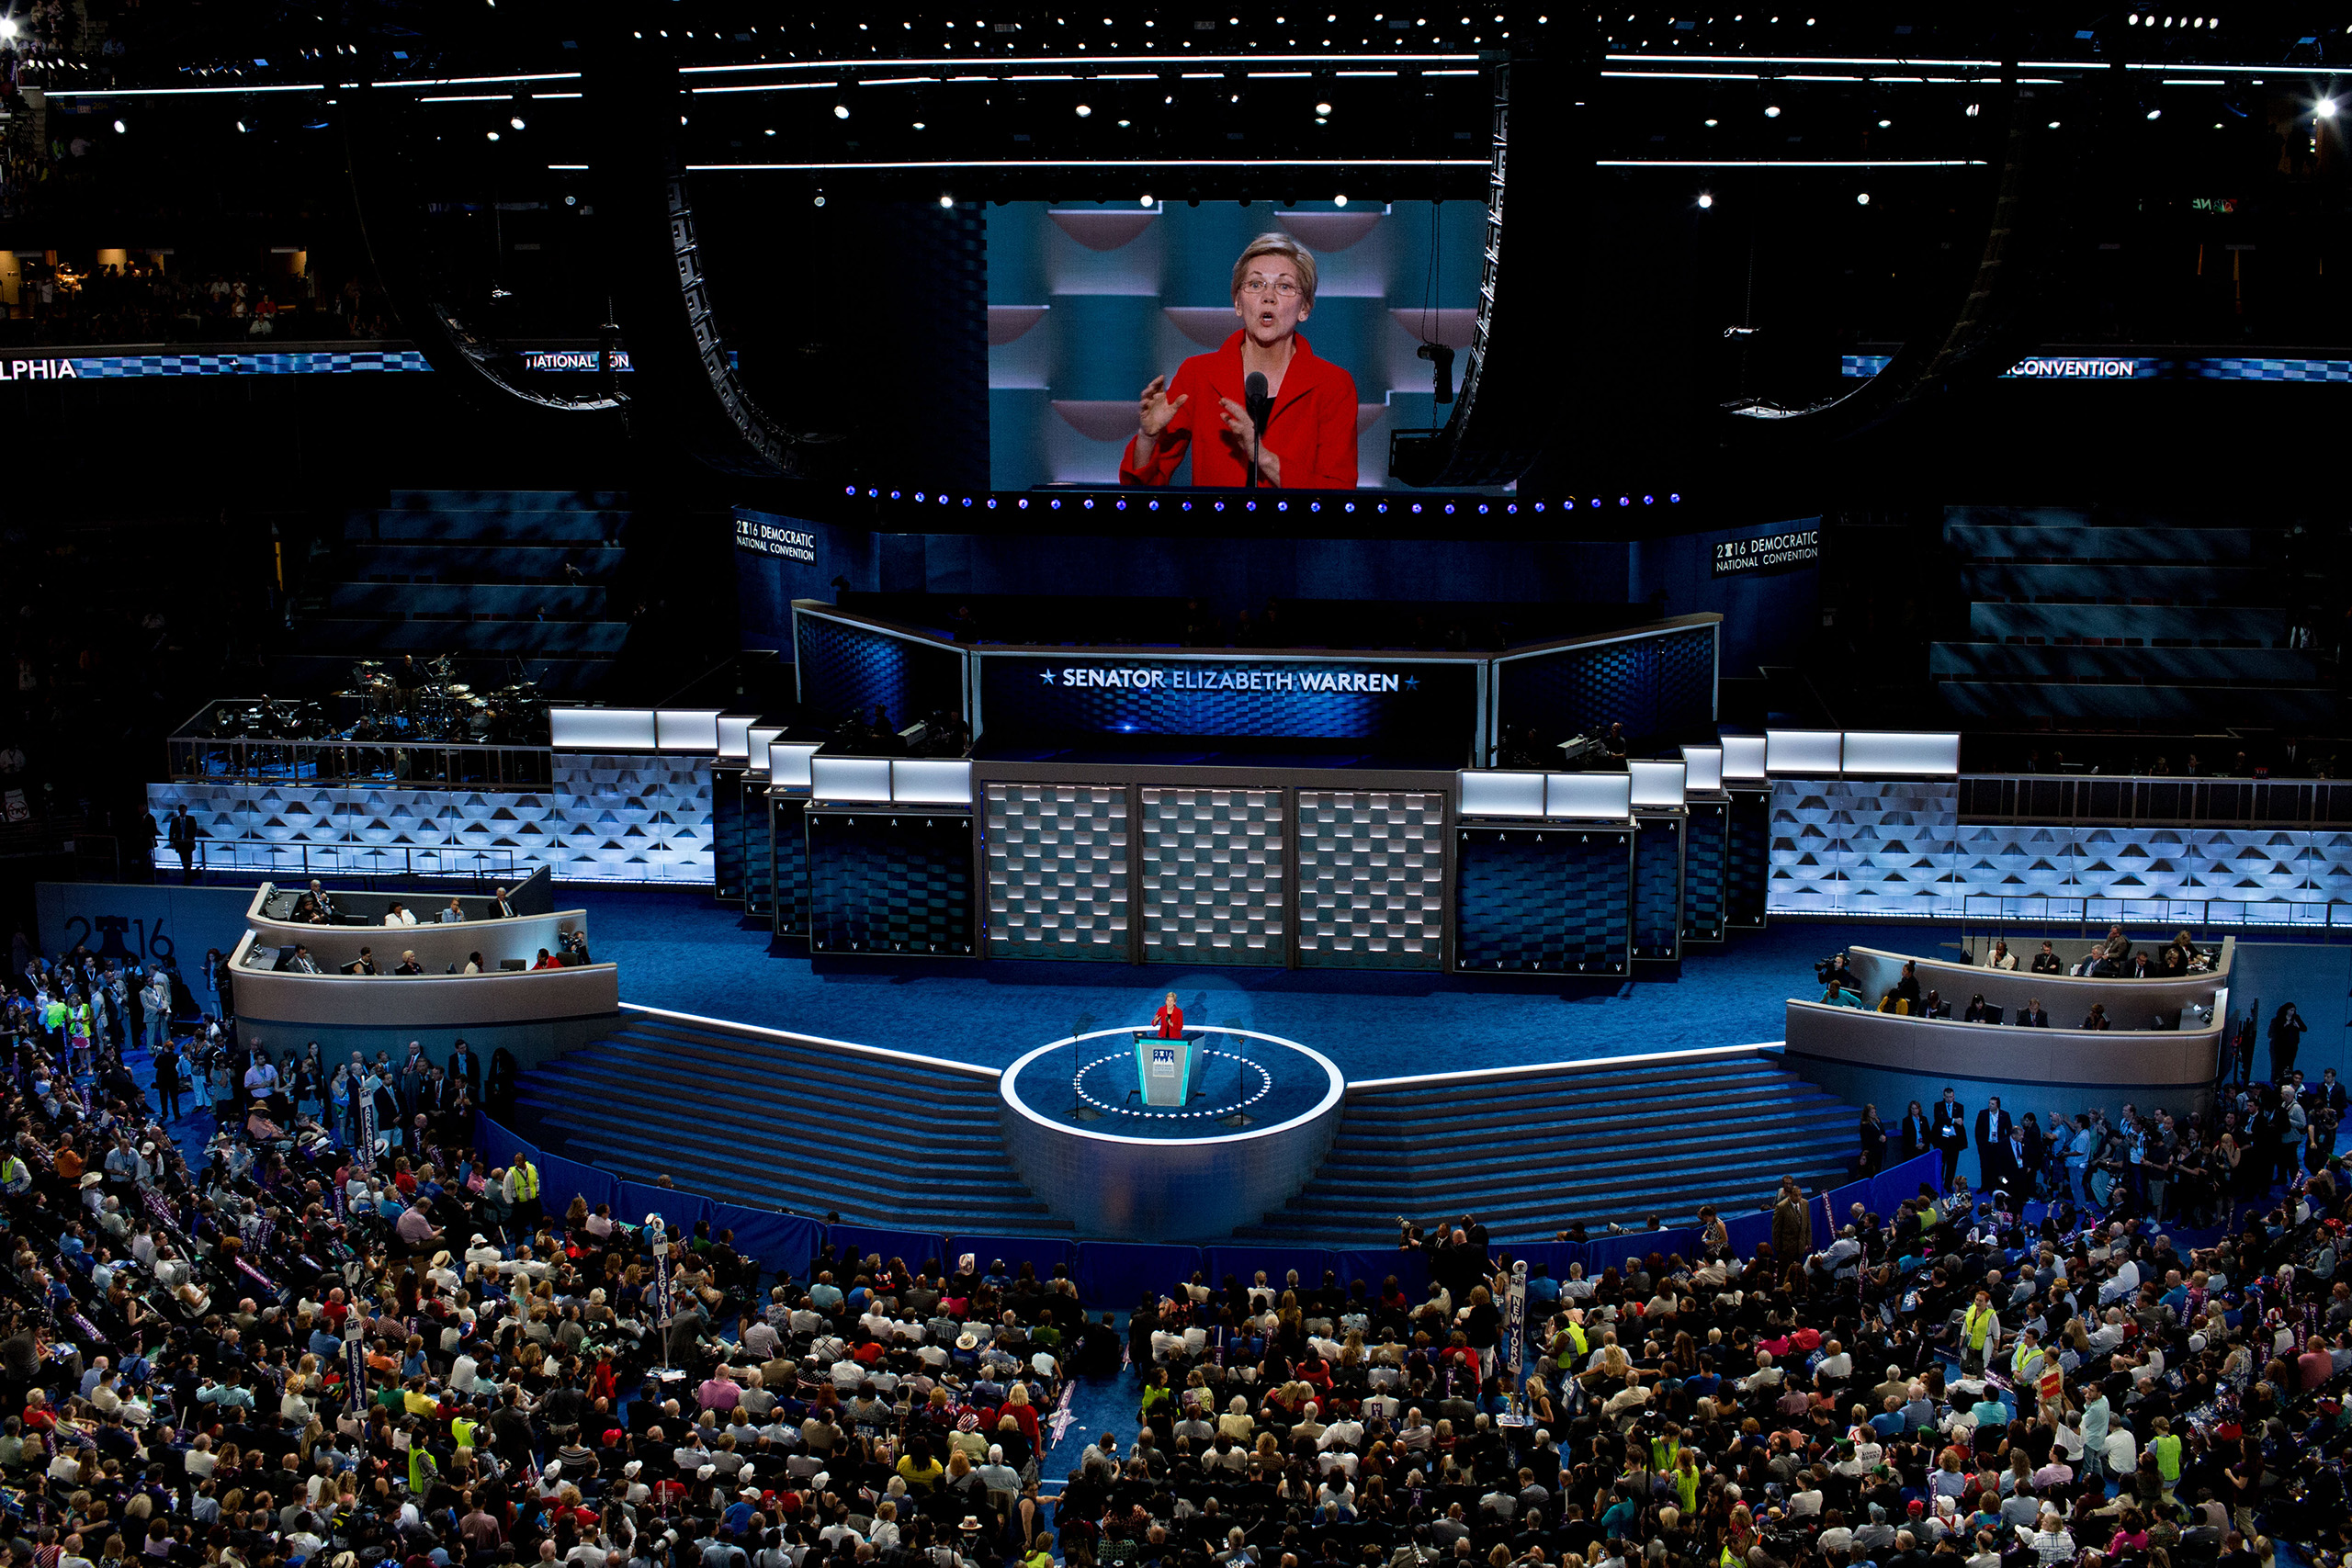 The Democratic convention stage was more generic, with solid colors and patterns and a monitor that showcased the speaker of the moment.